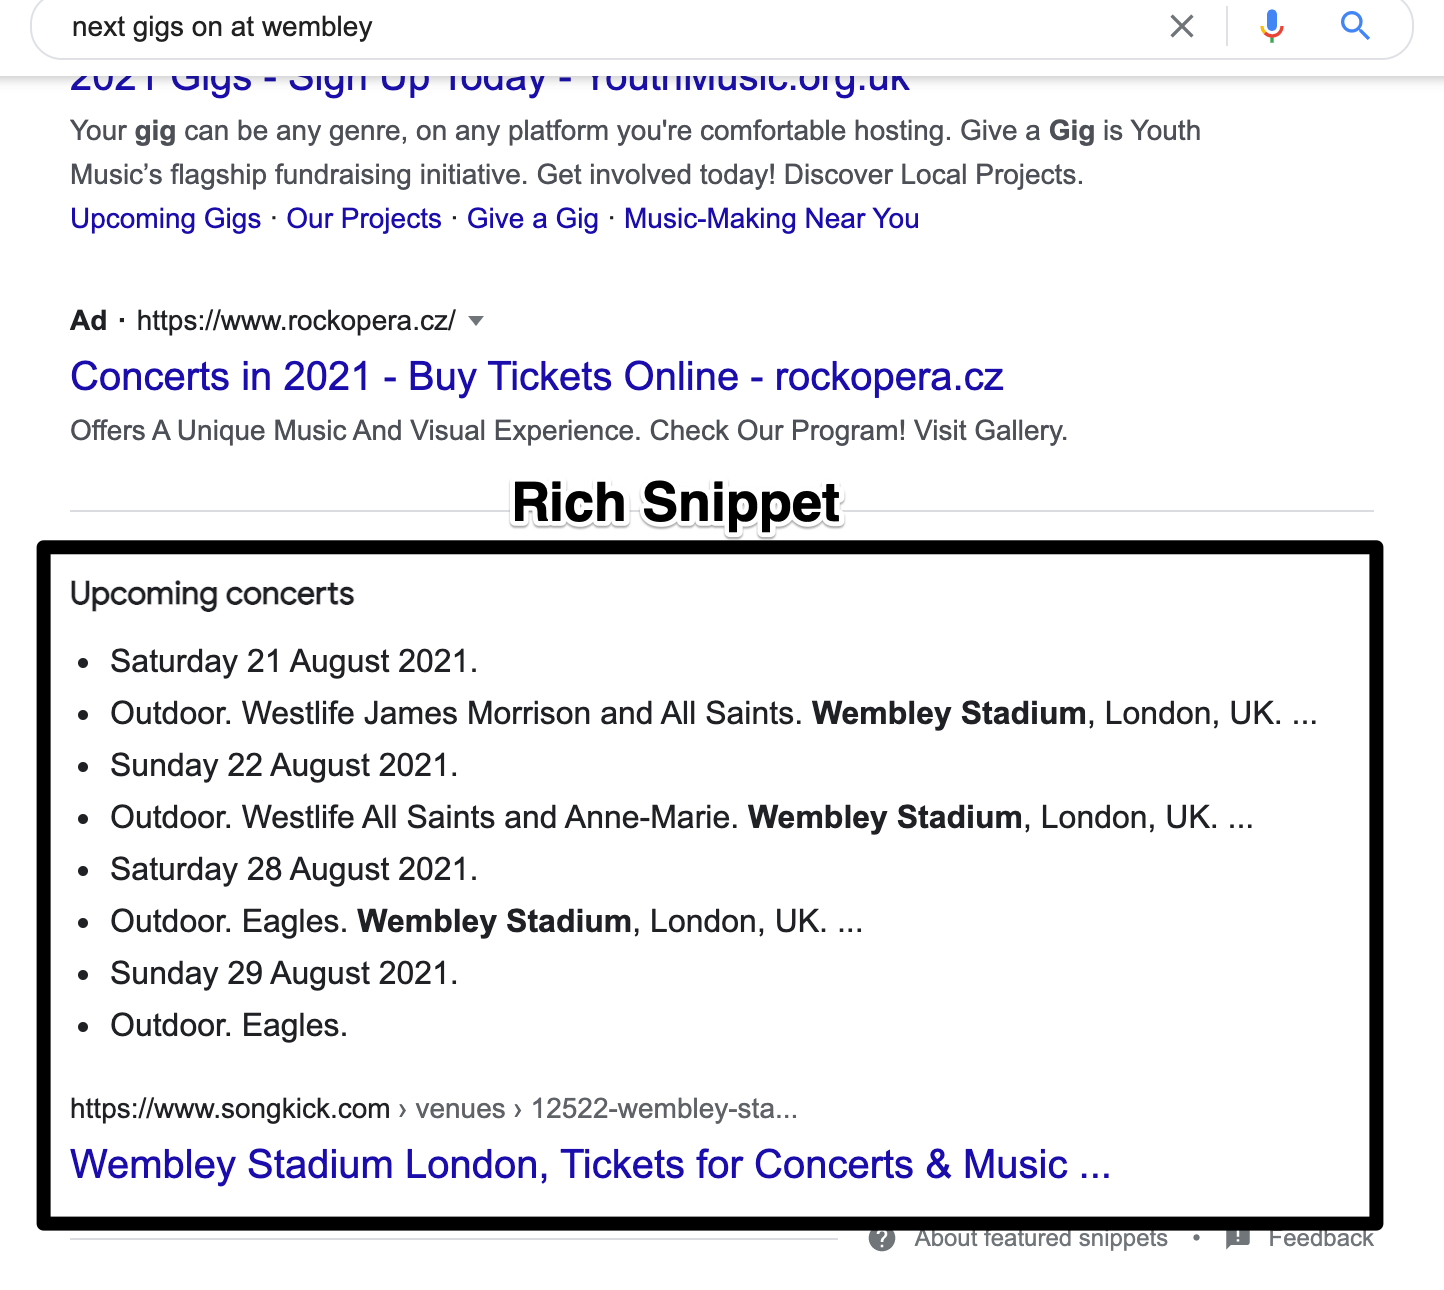 Image showing schema markup rich snippets in Google search results